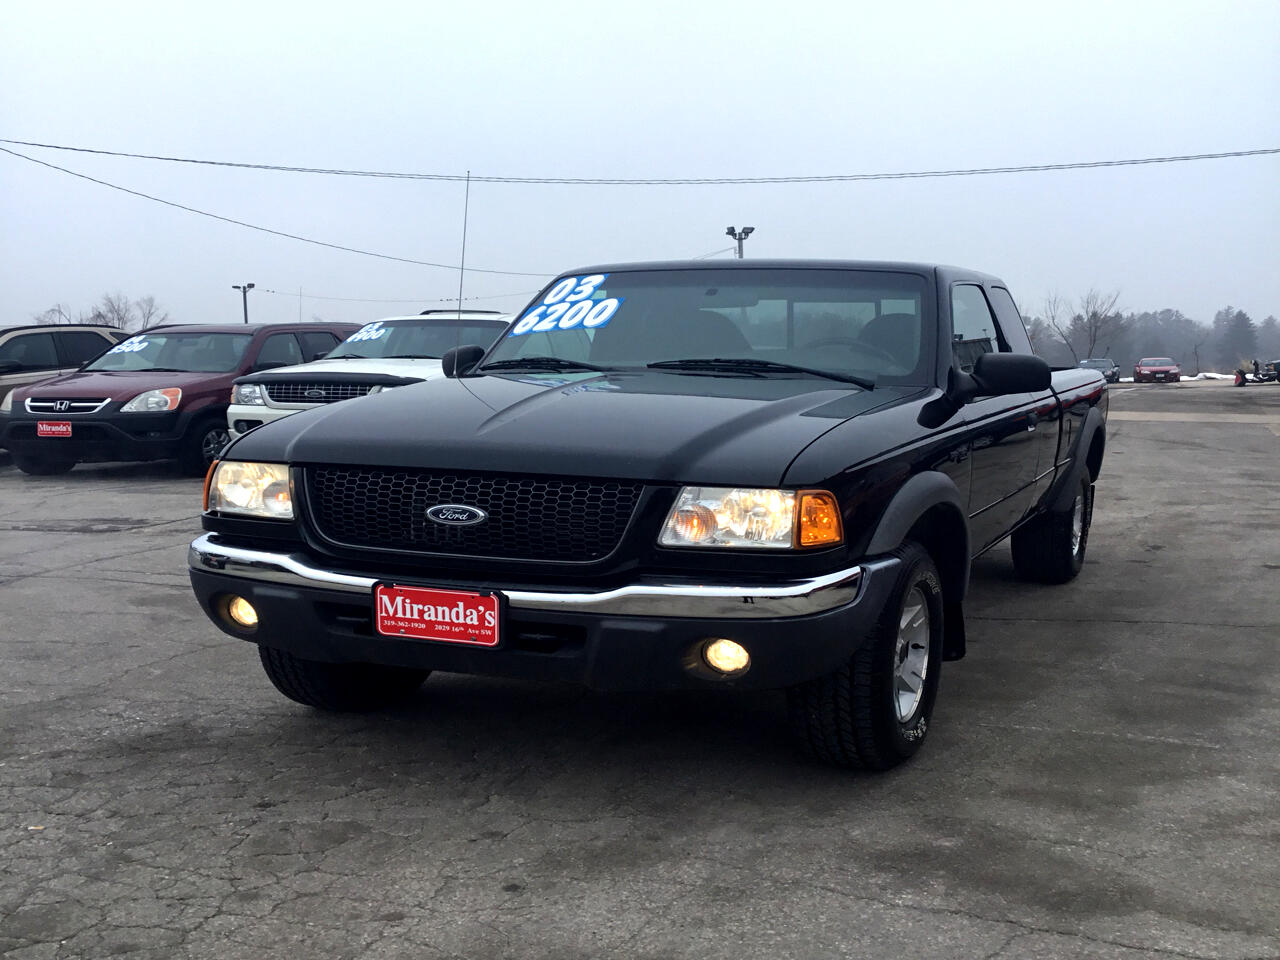 Ford Ranger Edge SuperCab 4WD 2003